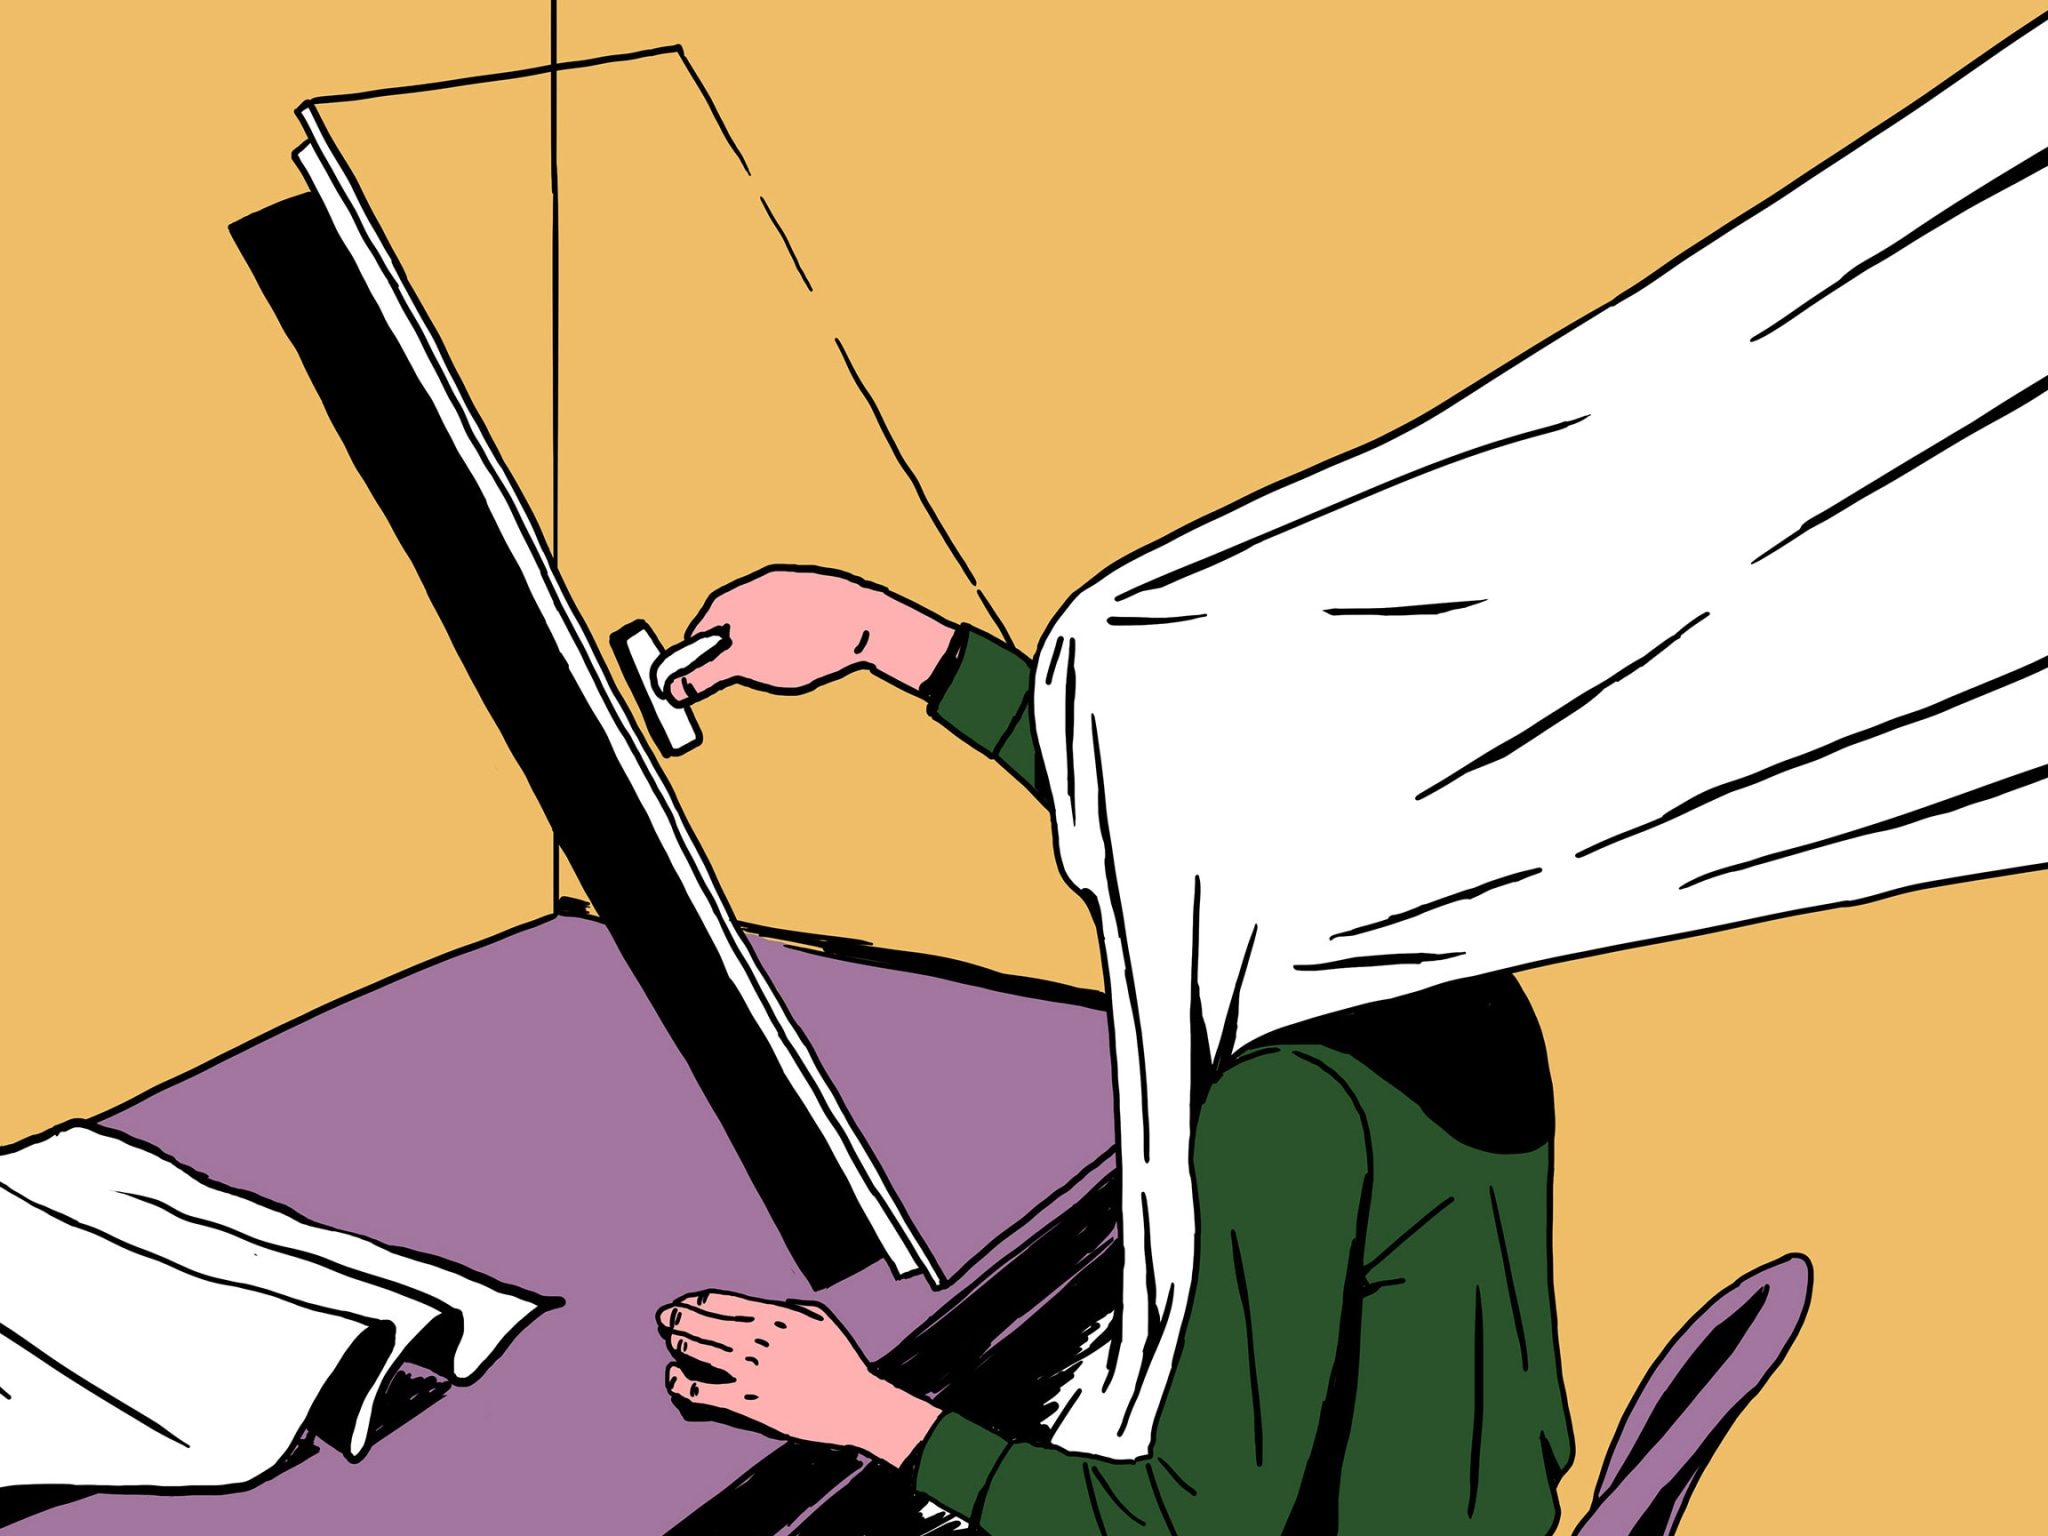 surreal illustration of a person wiping a glass screen with blanket over their head